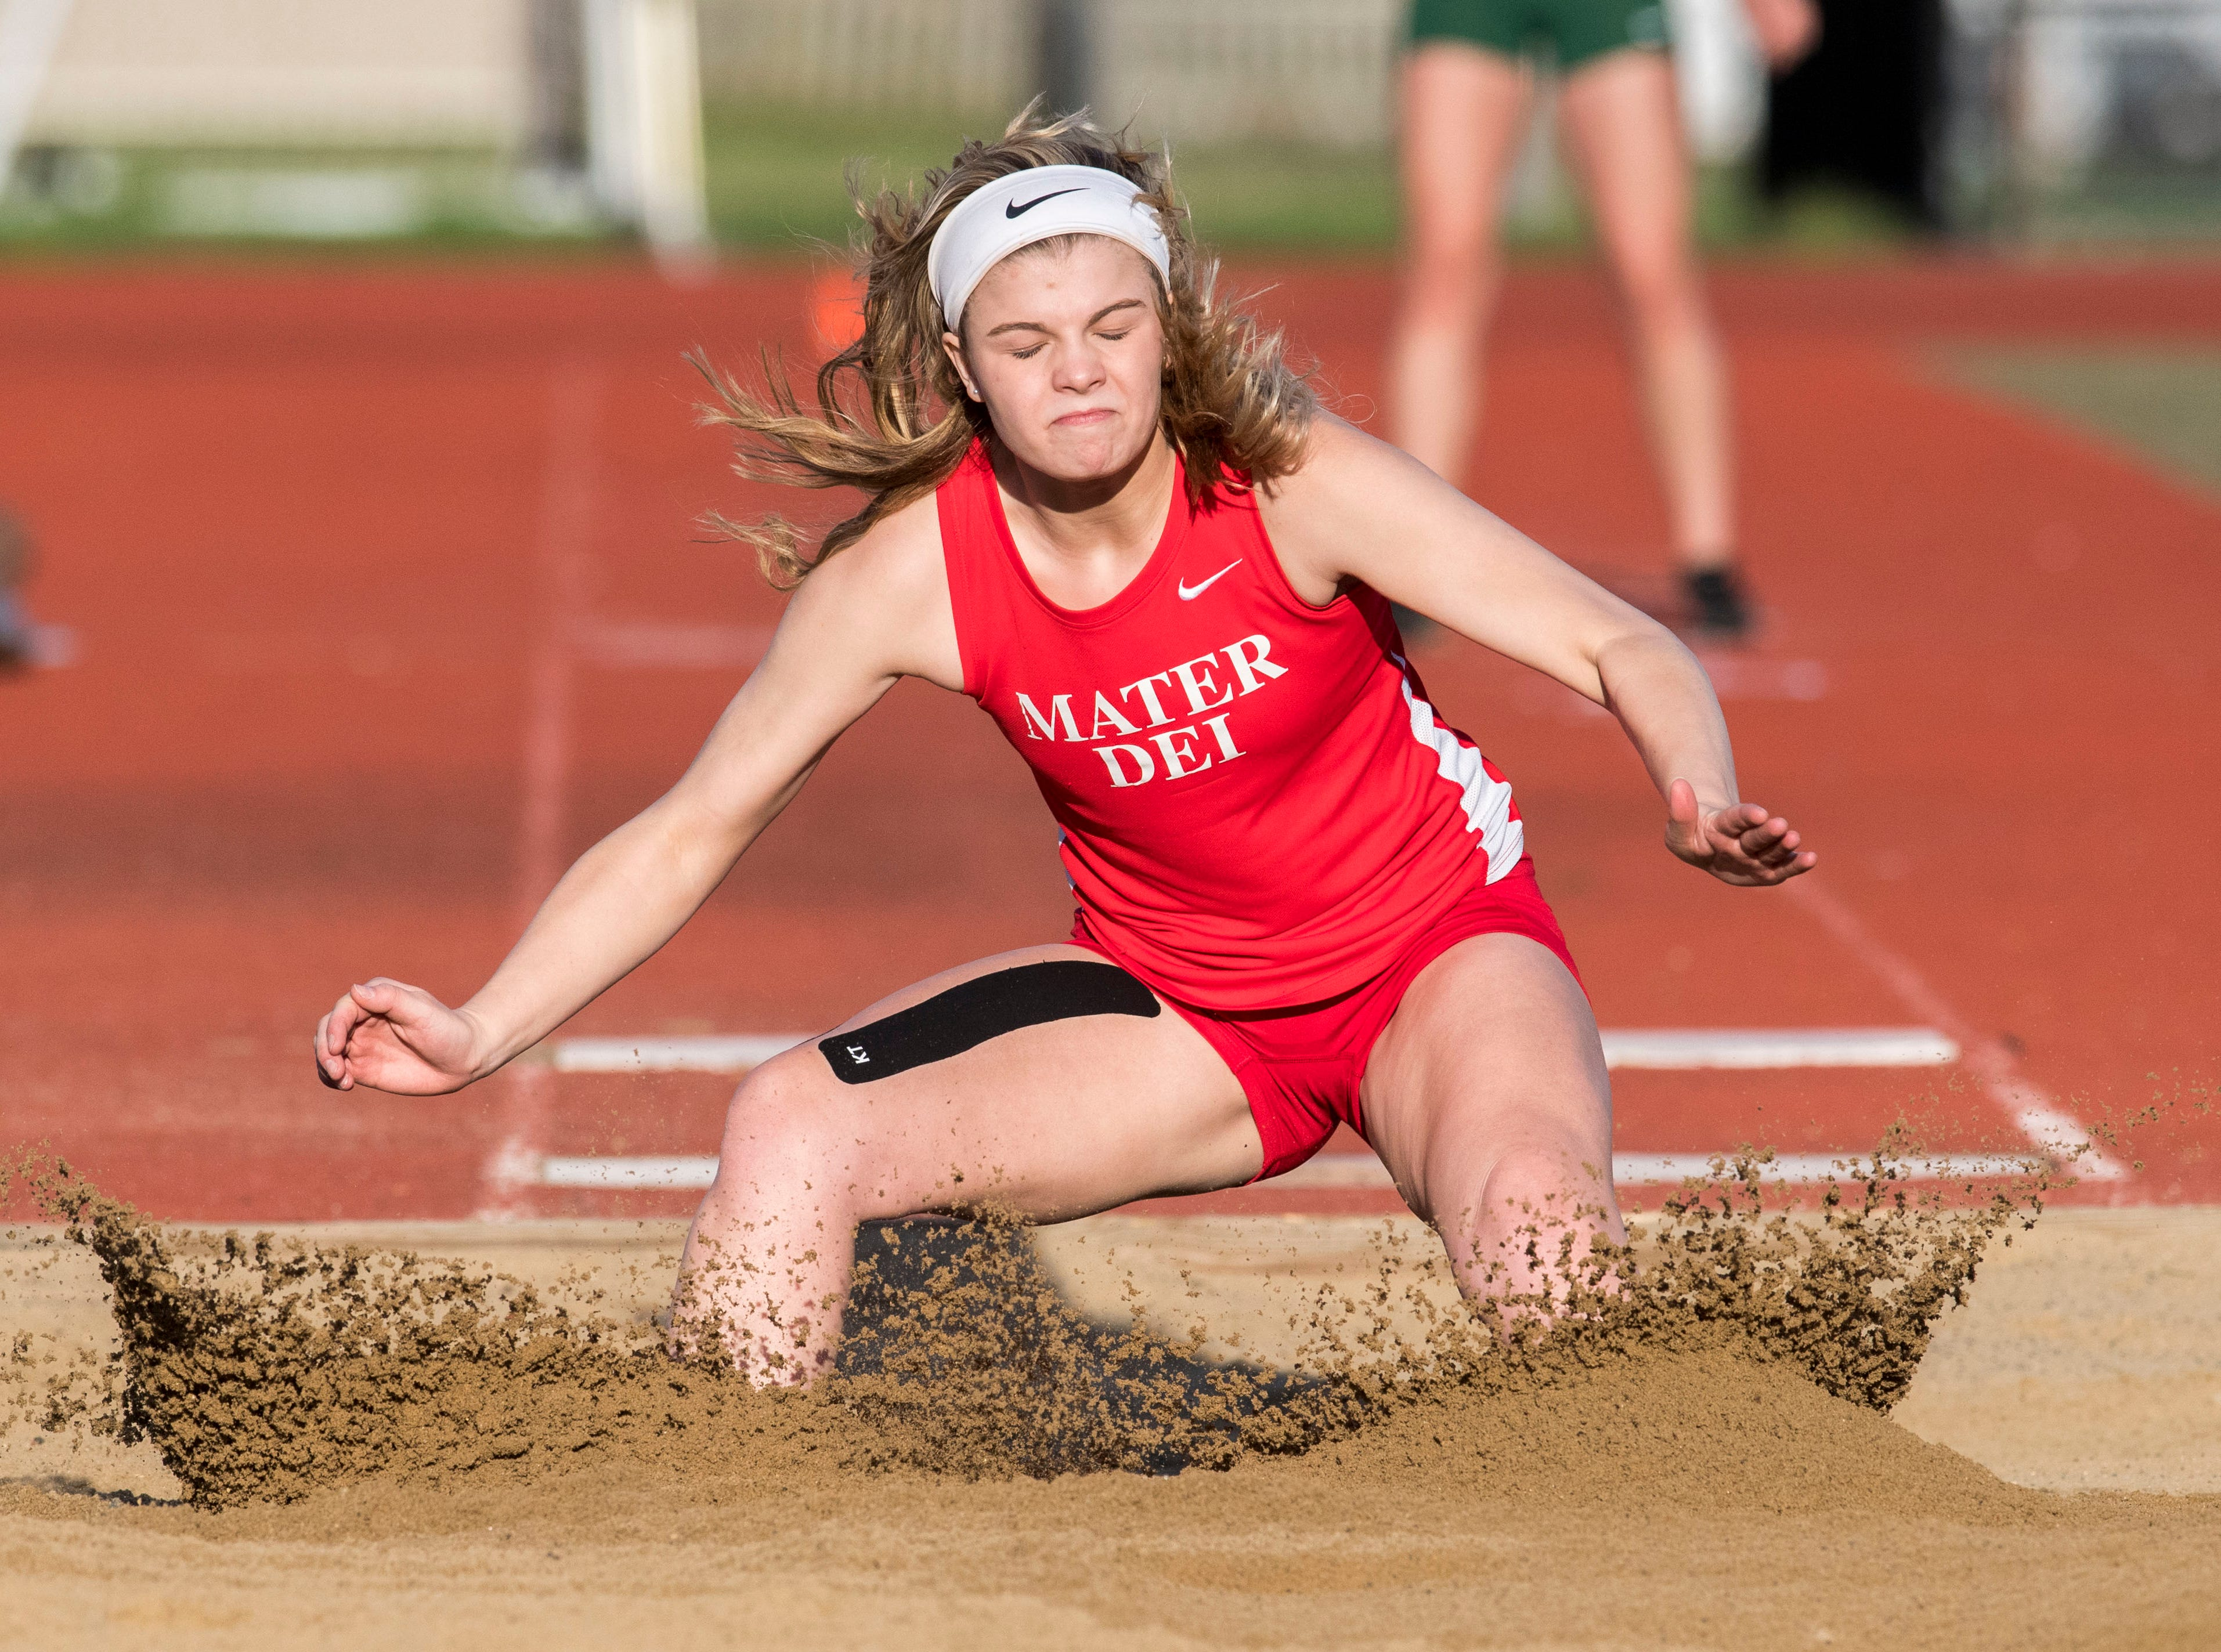 Mater Dei's Audrey Vibbert lands in the pit after a jump during the 2019 City Track and Field meet at Central High School Friday, April 12, 2019.